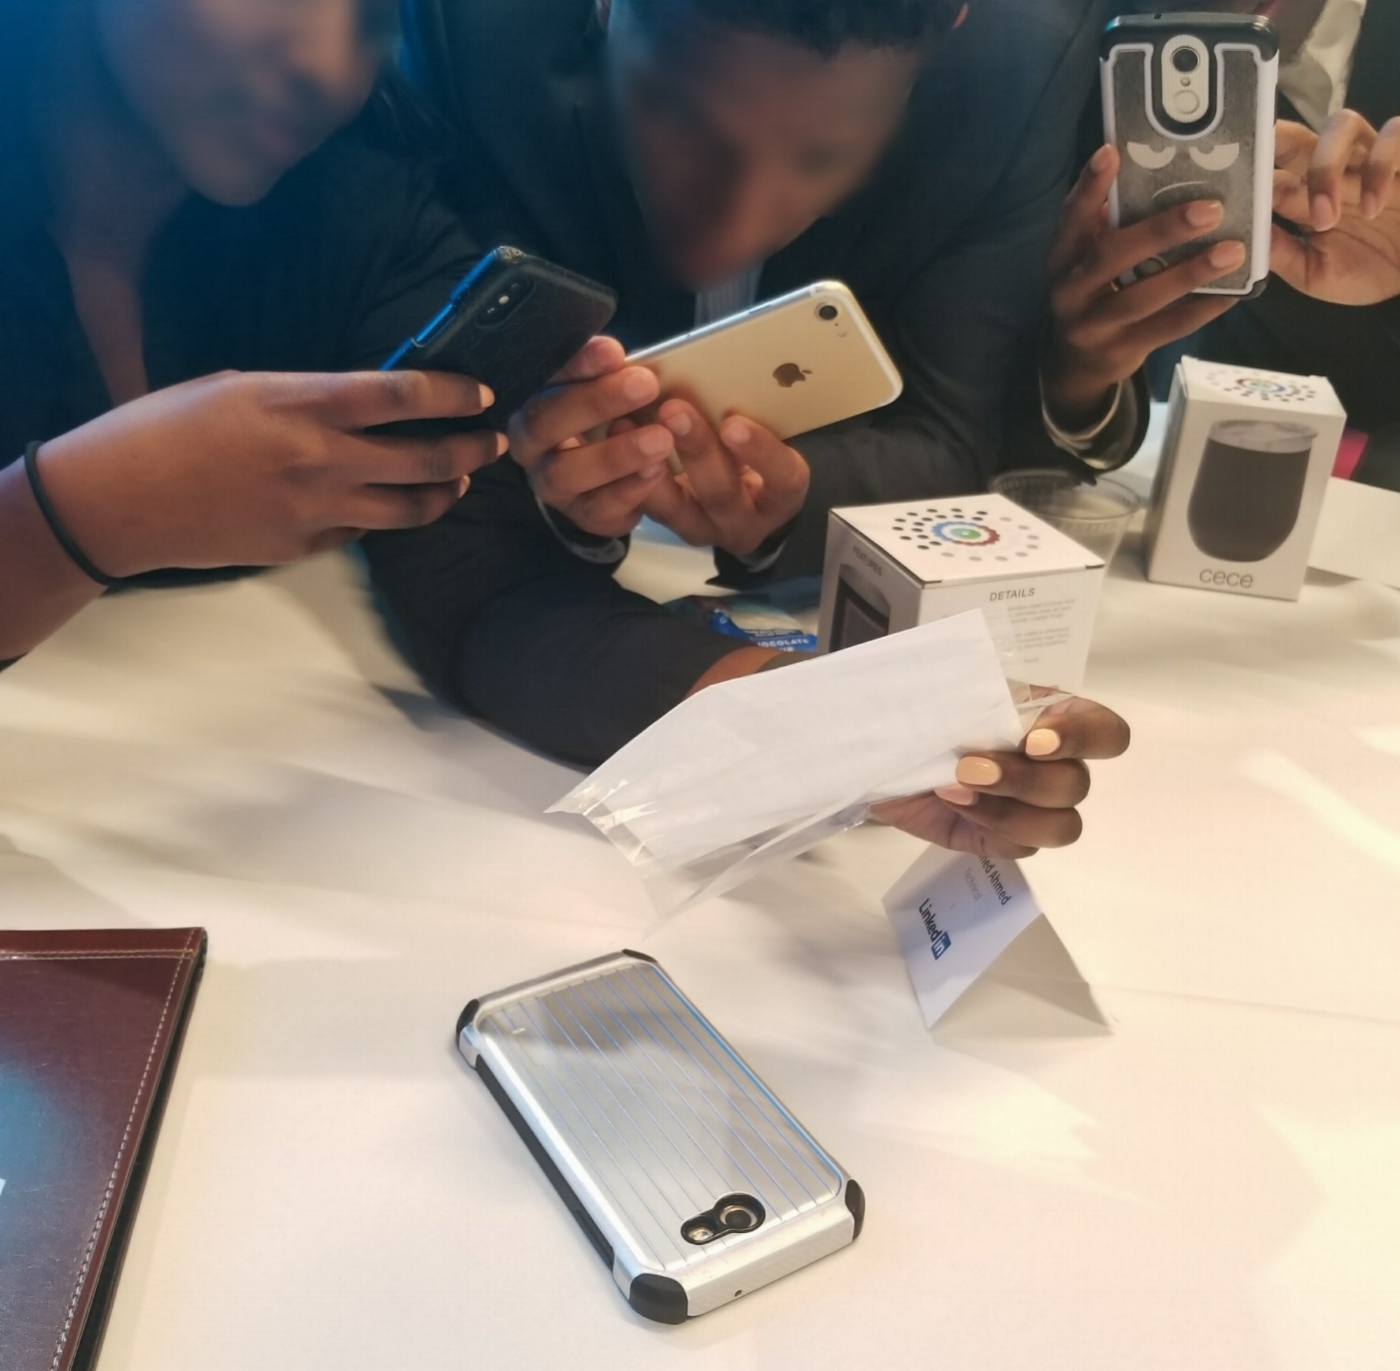 Members at a conference taking a picture of a name badge to then go back and search to connect. -